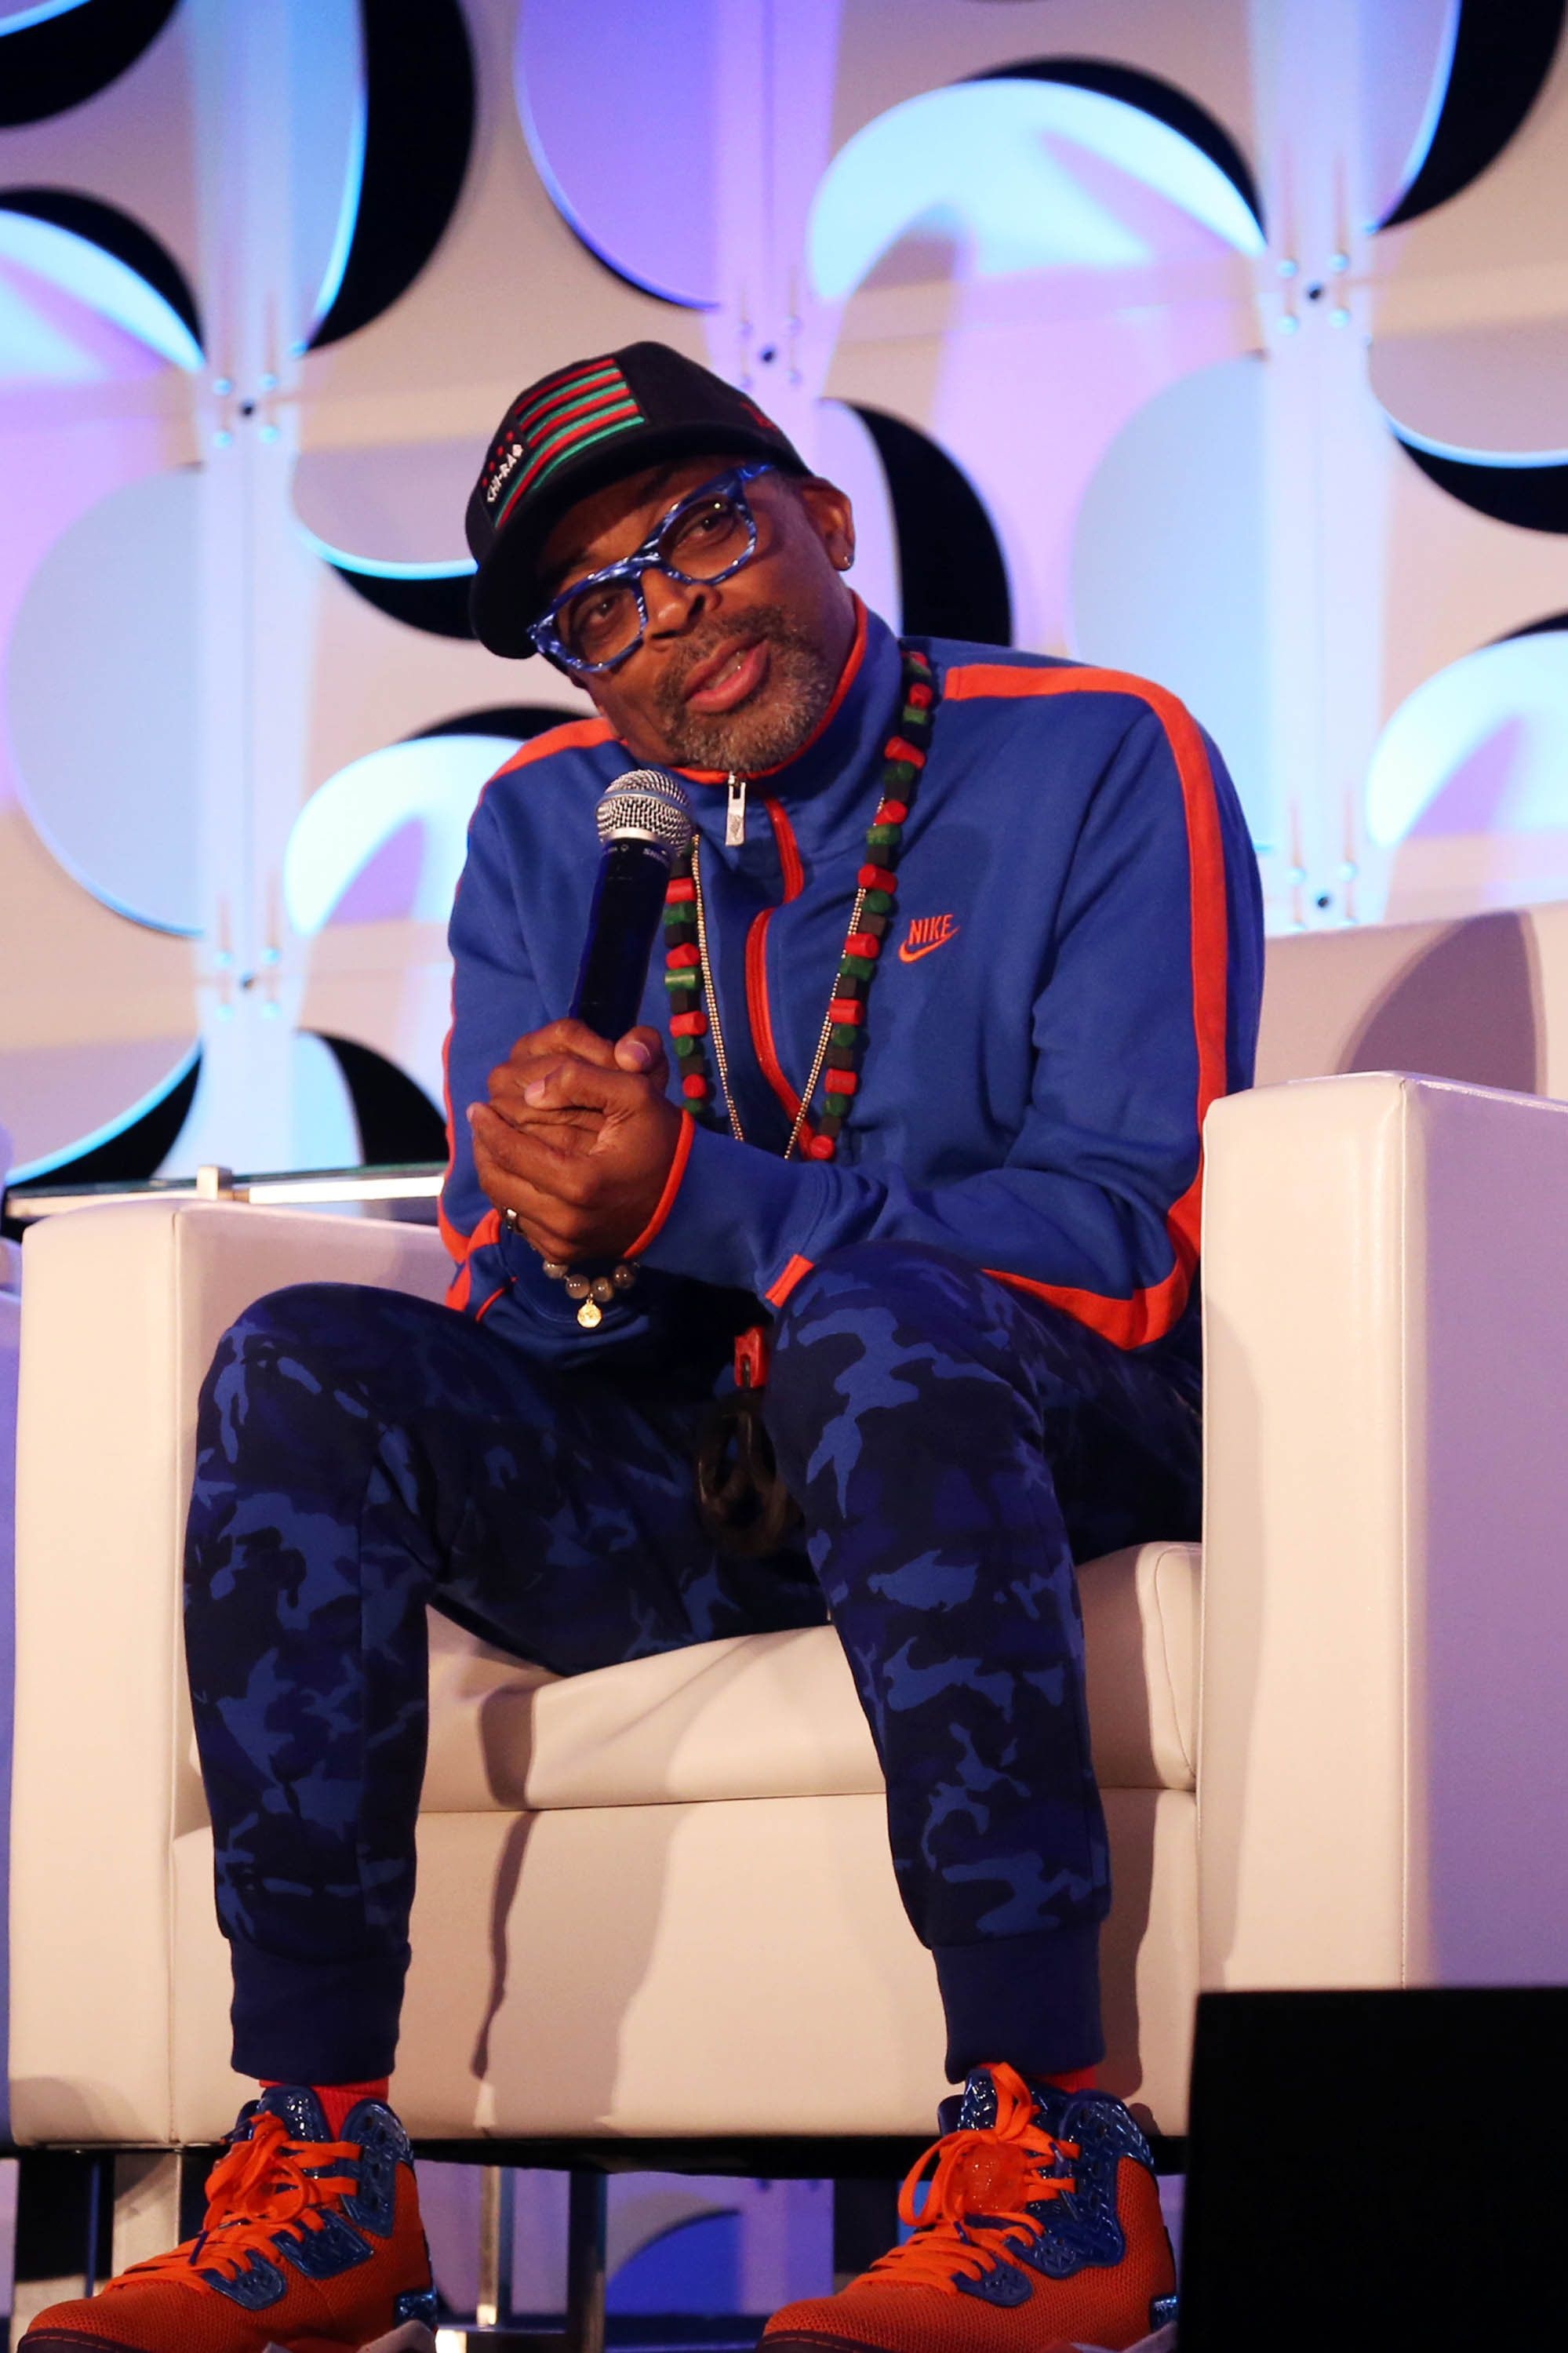 NEW YORK, NY - SEPTEMBER 30:  Filmmaker Spike Lee speaks at the 29th Annual NAMIC Conference at Marriott Marquis Times Square on September 30, 2015, in New York City.  (Photo by Johnny Nunez/WireImage)